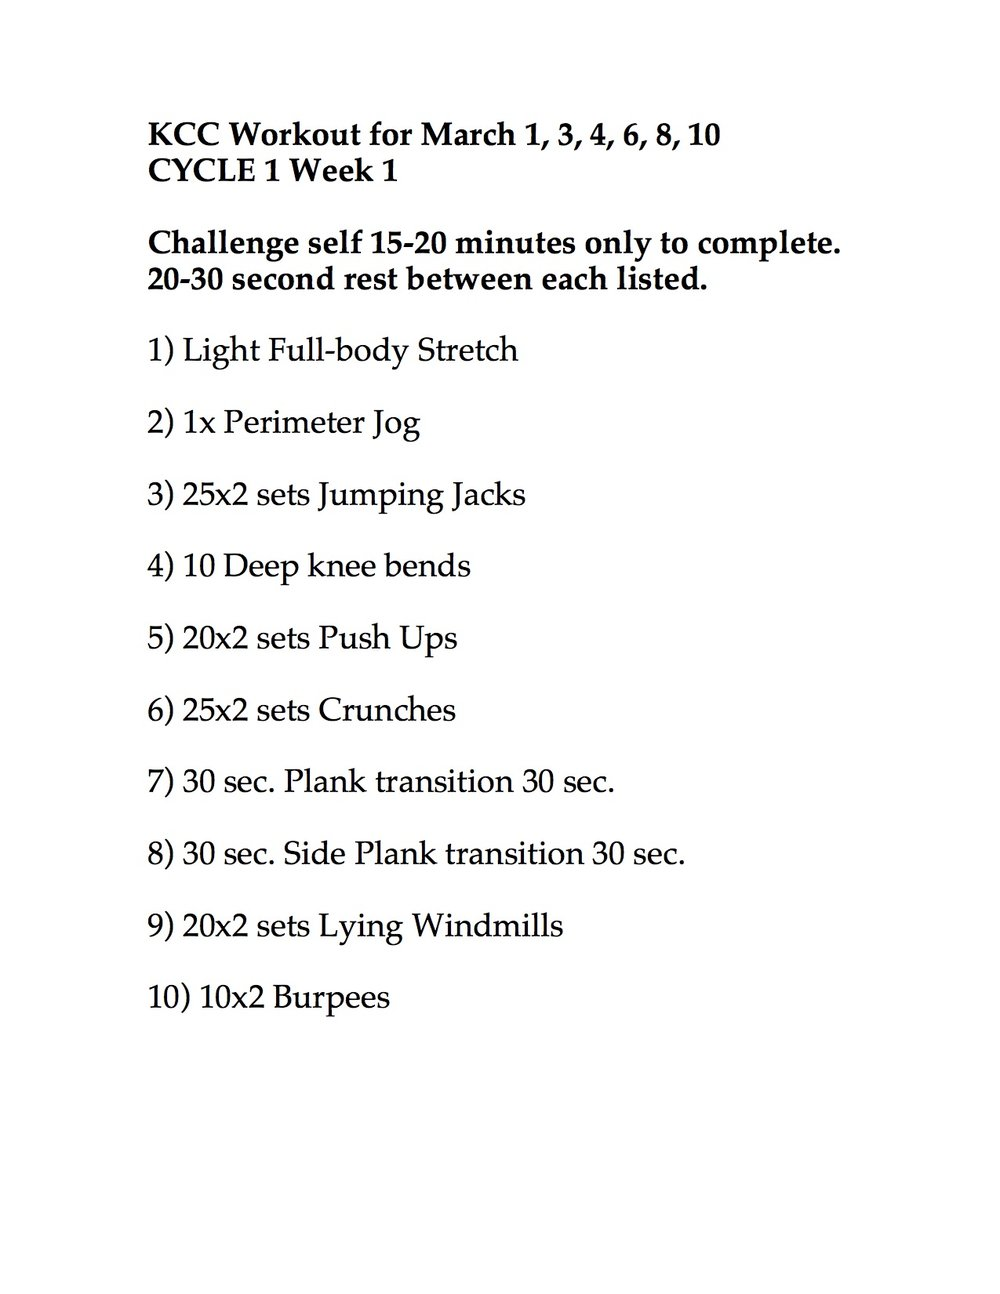 WEEK 2 CYCLE 1